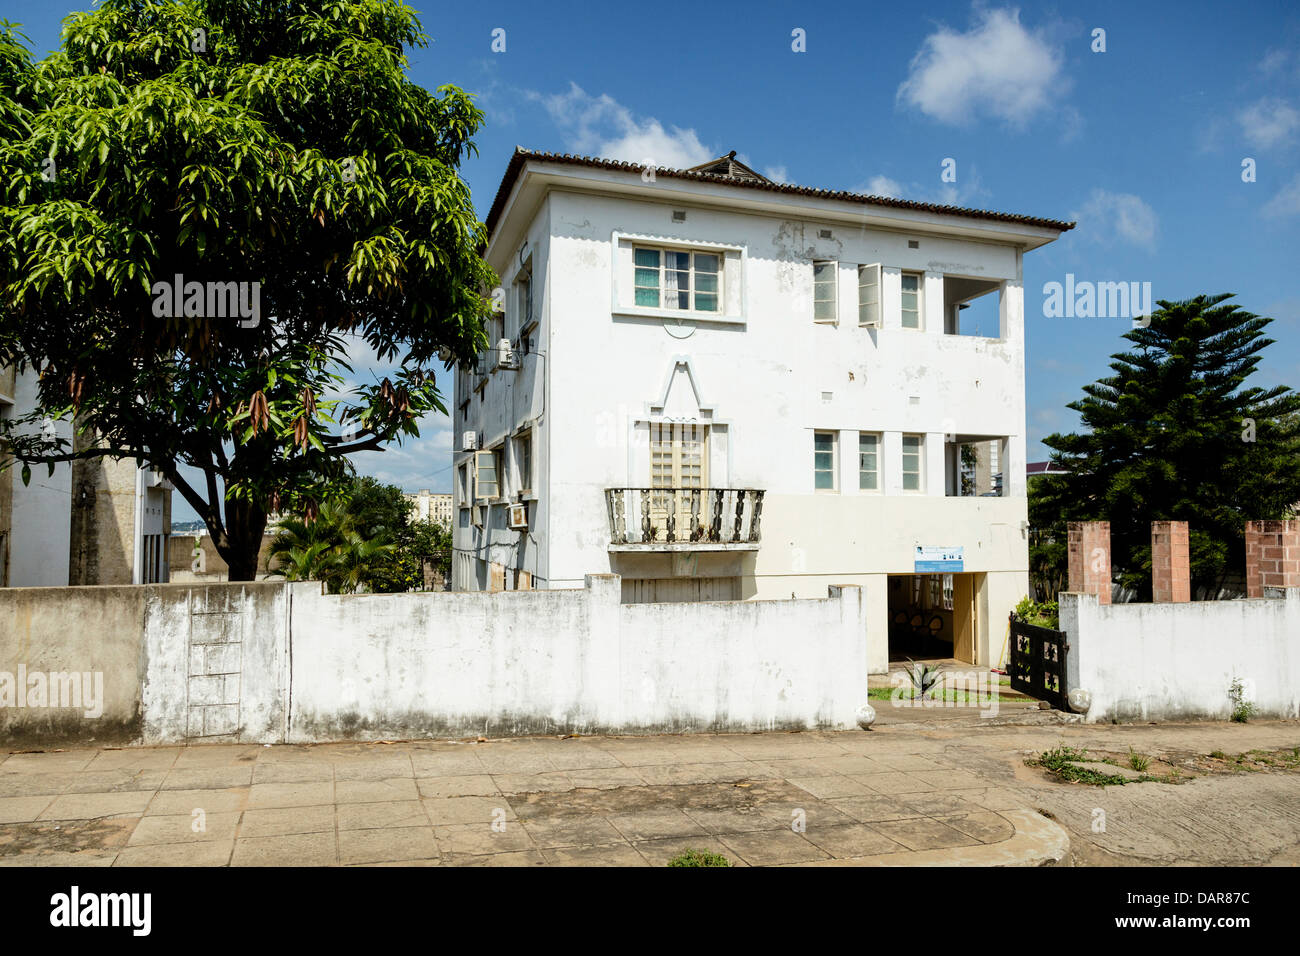 Africa, Mozambique, Maputo. Traditional building on street. - Stock Image